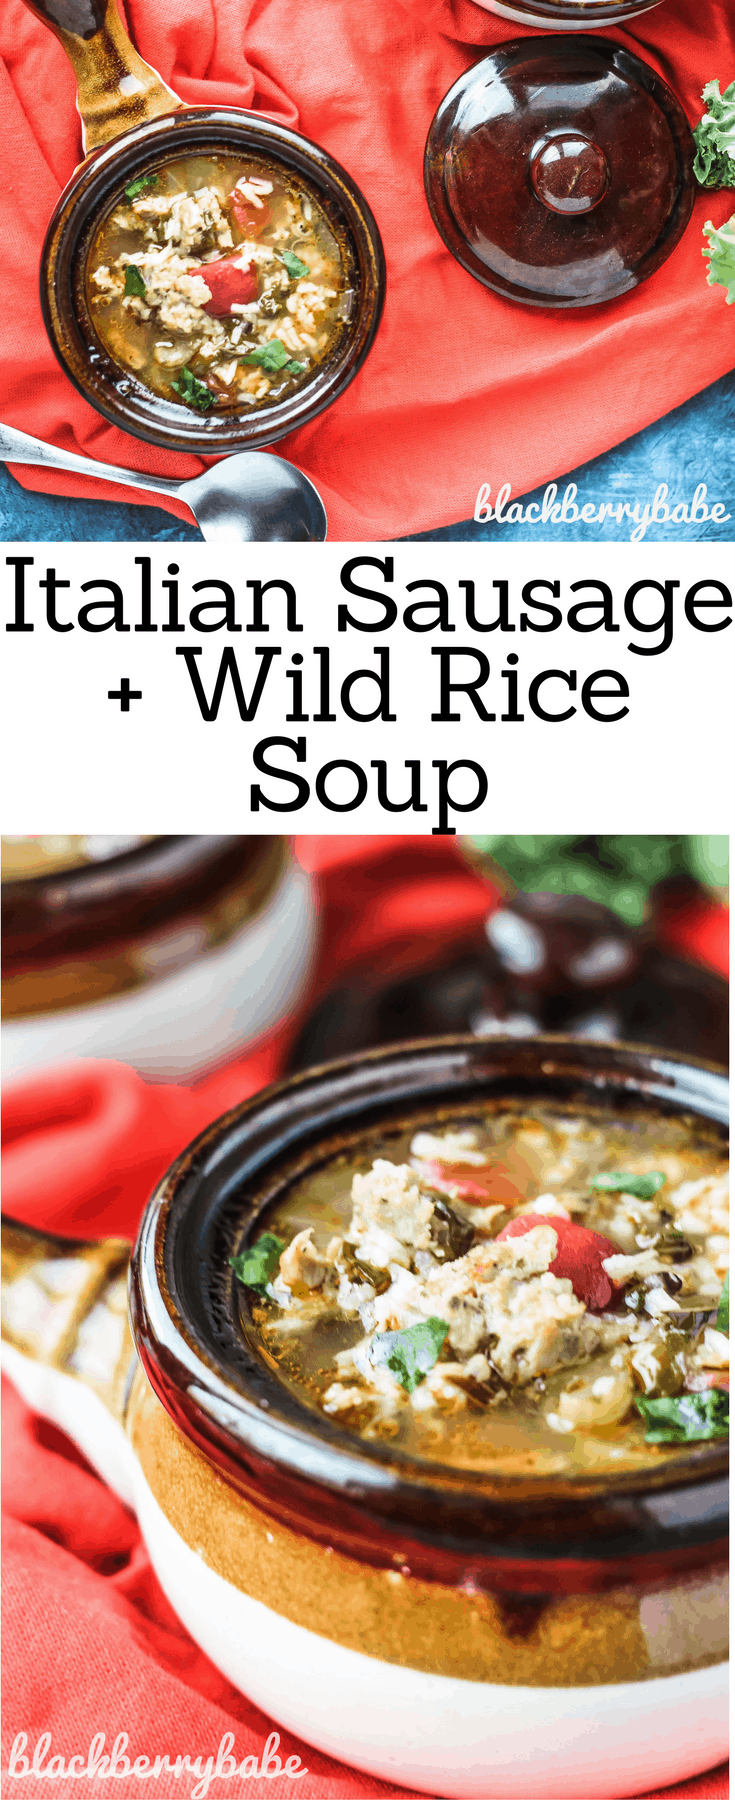 Sausage and Wild Rice Soup with Collard Greens